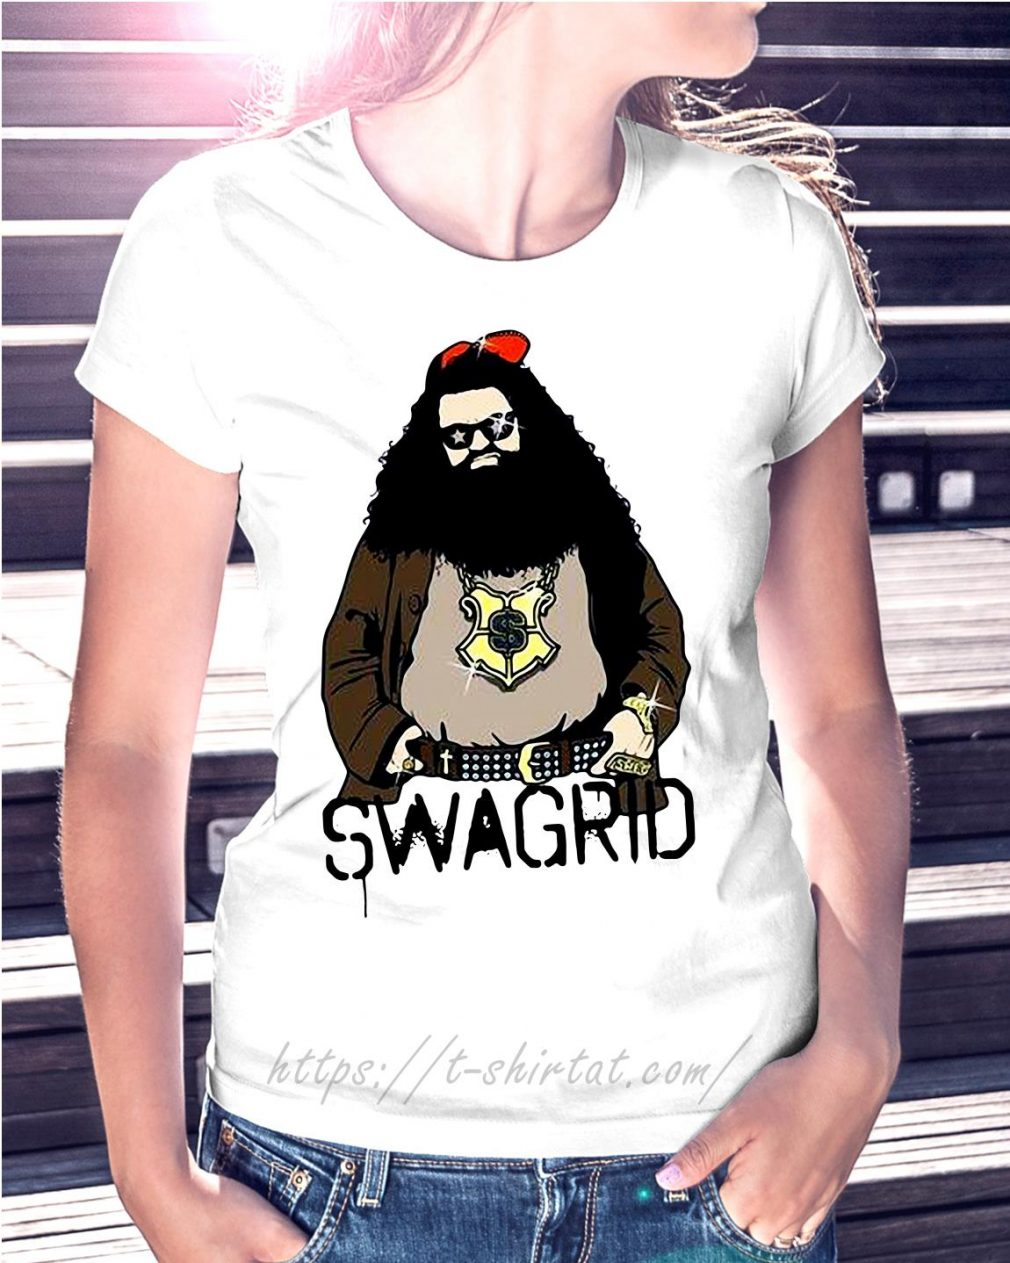 Harry Potter Swag Rubeus Hagrid Swagrid